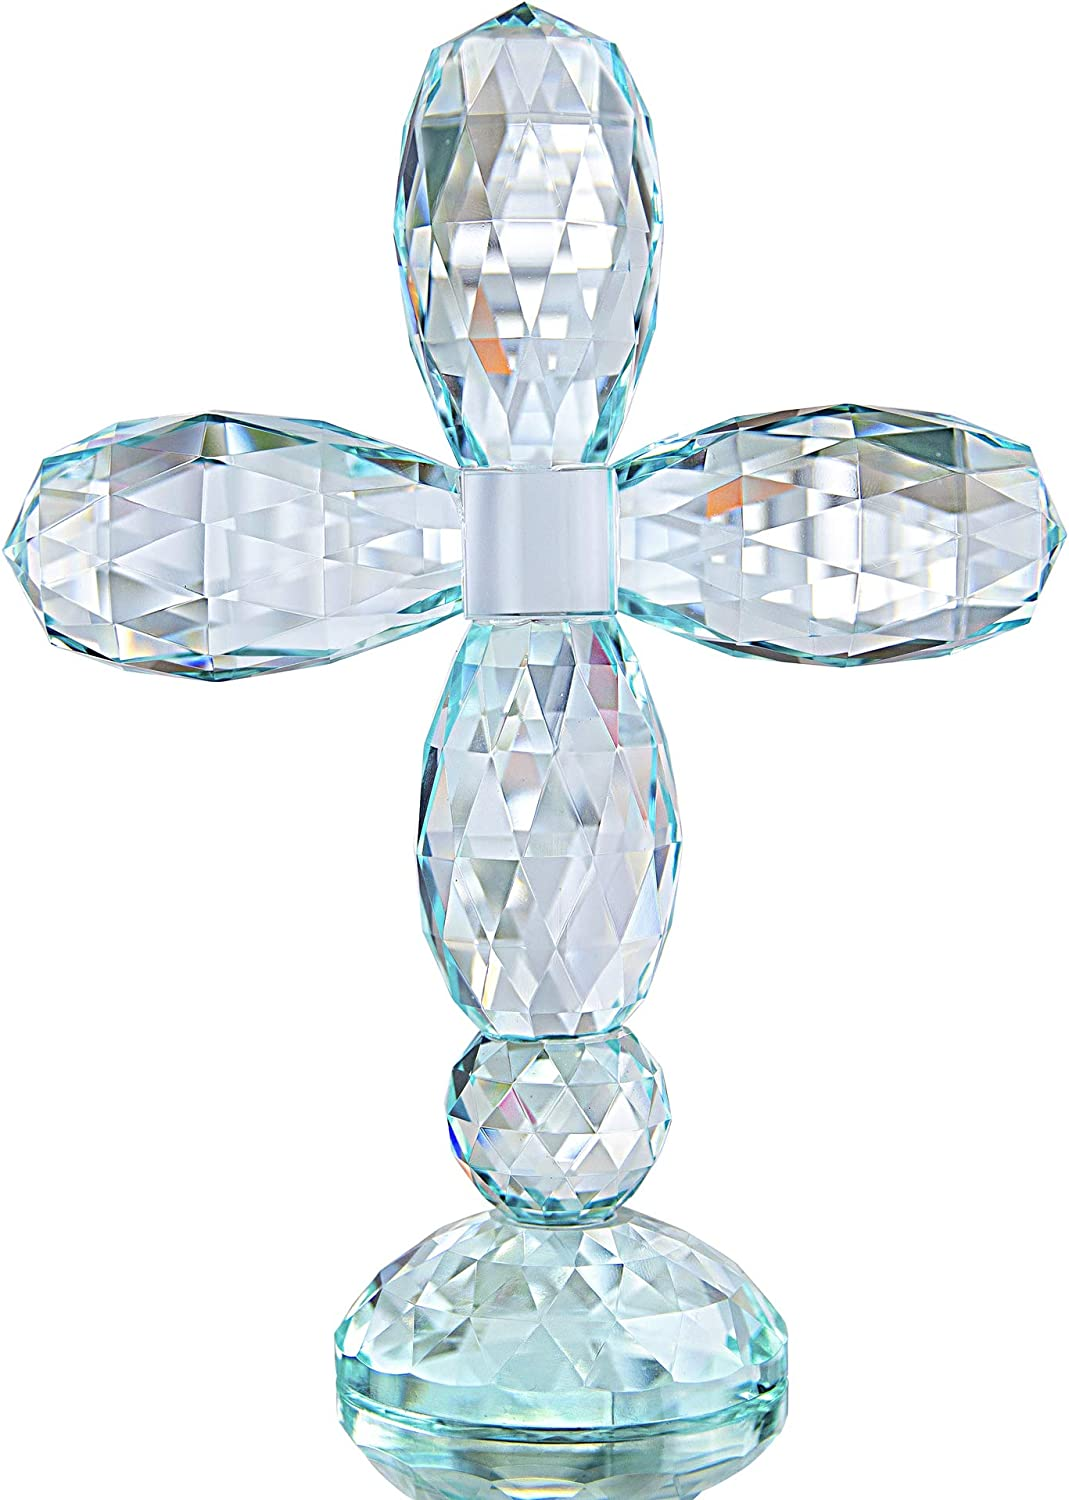 QF Crystal Cross Standing Colorful Traditional Cross Figurine 5.5 x 7 inches Glass Craft Decor (Cyan-Blue)